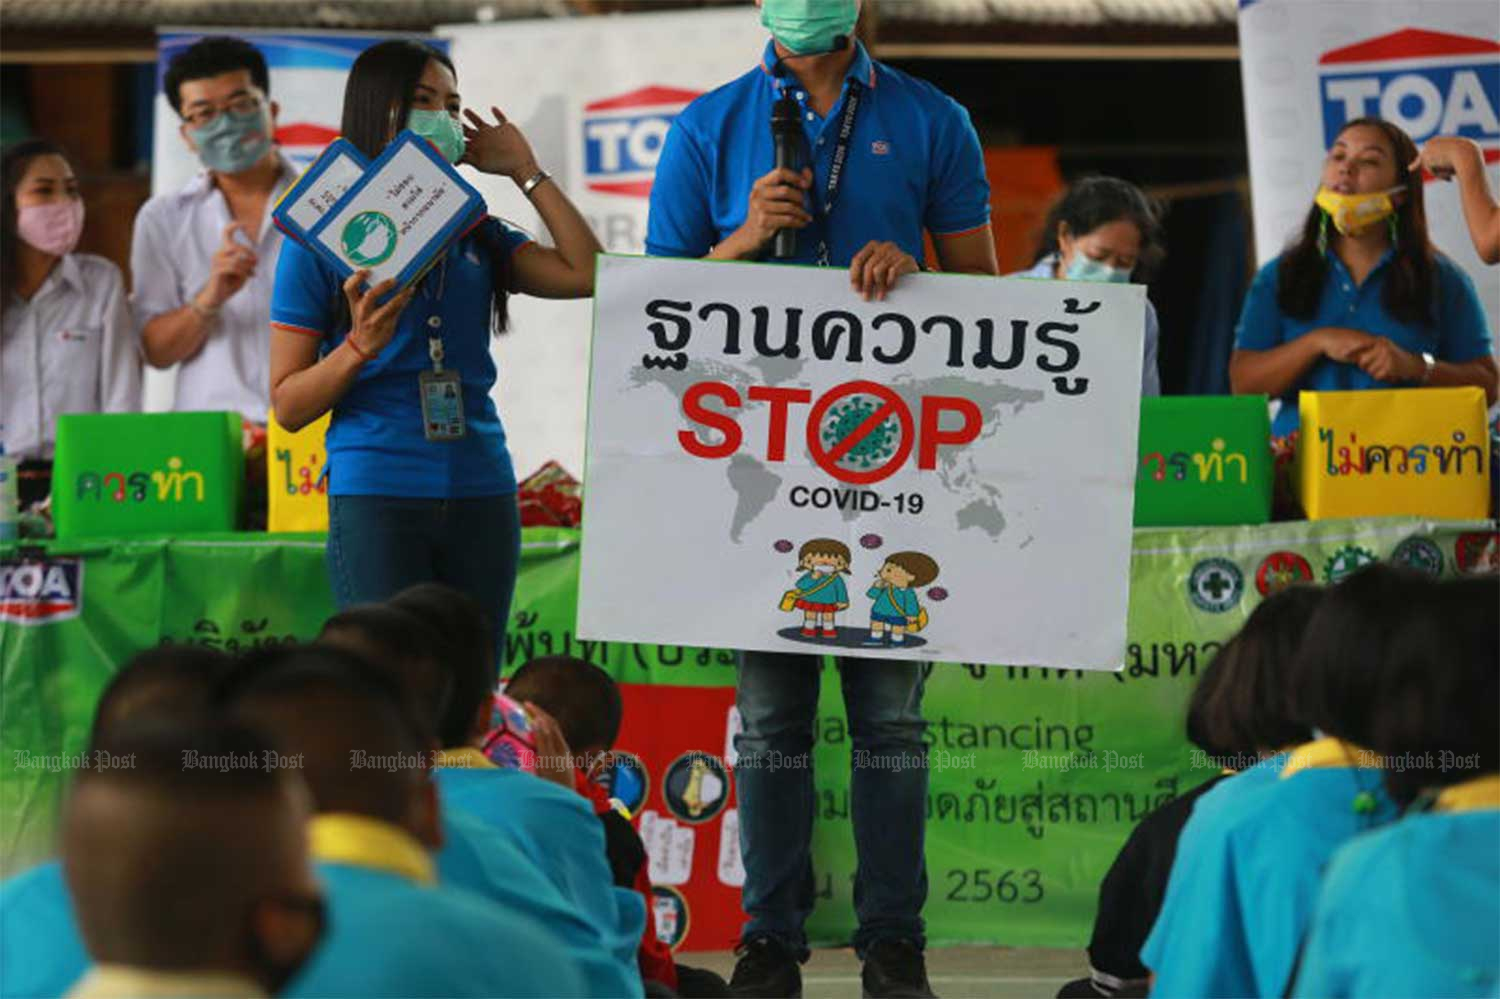 Officials educate students at Bang Sao Thong School in Samut Prakan province about Covid-19 and how to protect themselves on Thursday morning. (Photo by Somchai Poomlard)